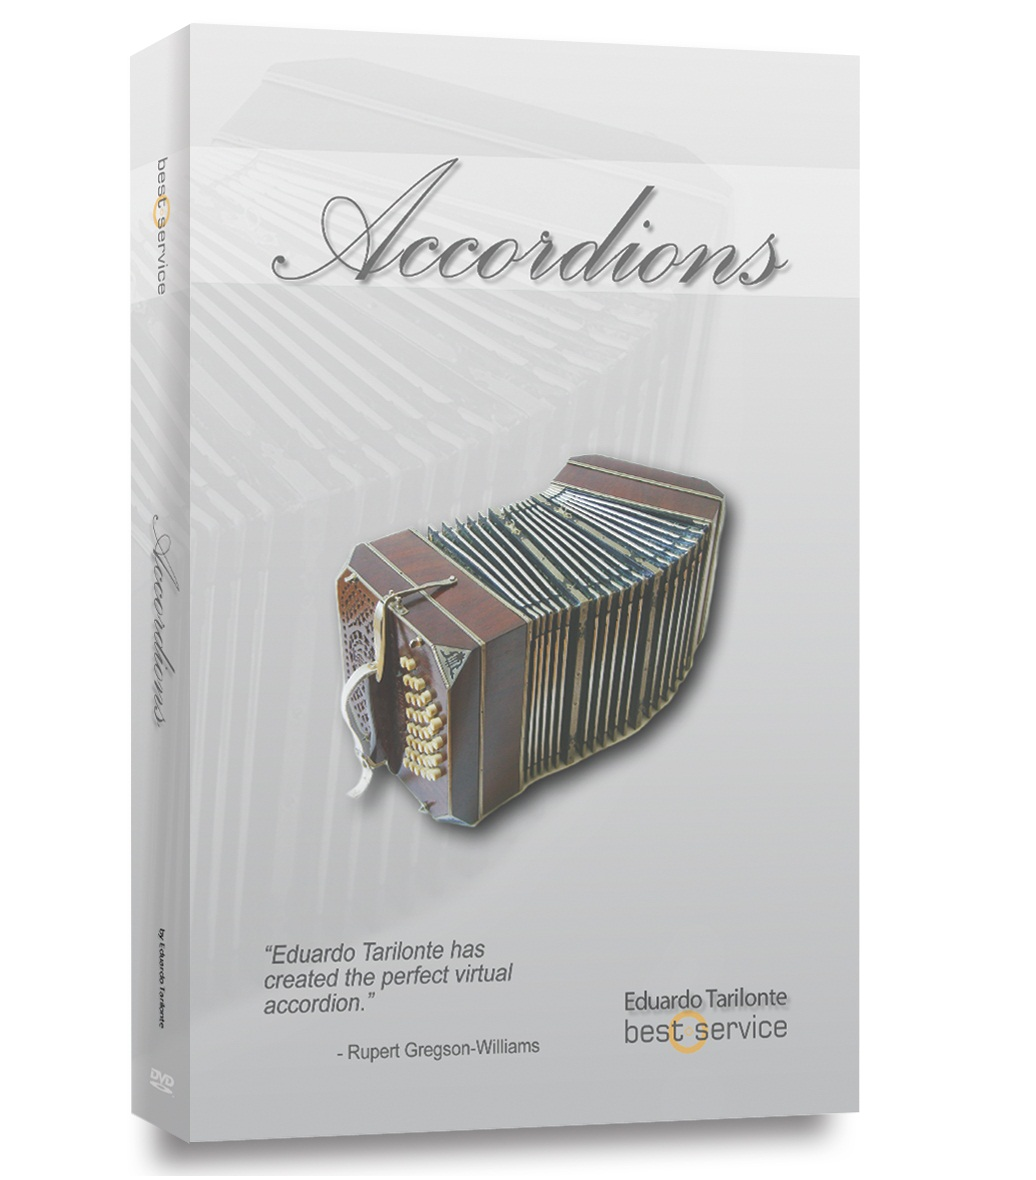 Best service accordions library kontakt zip password